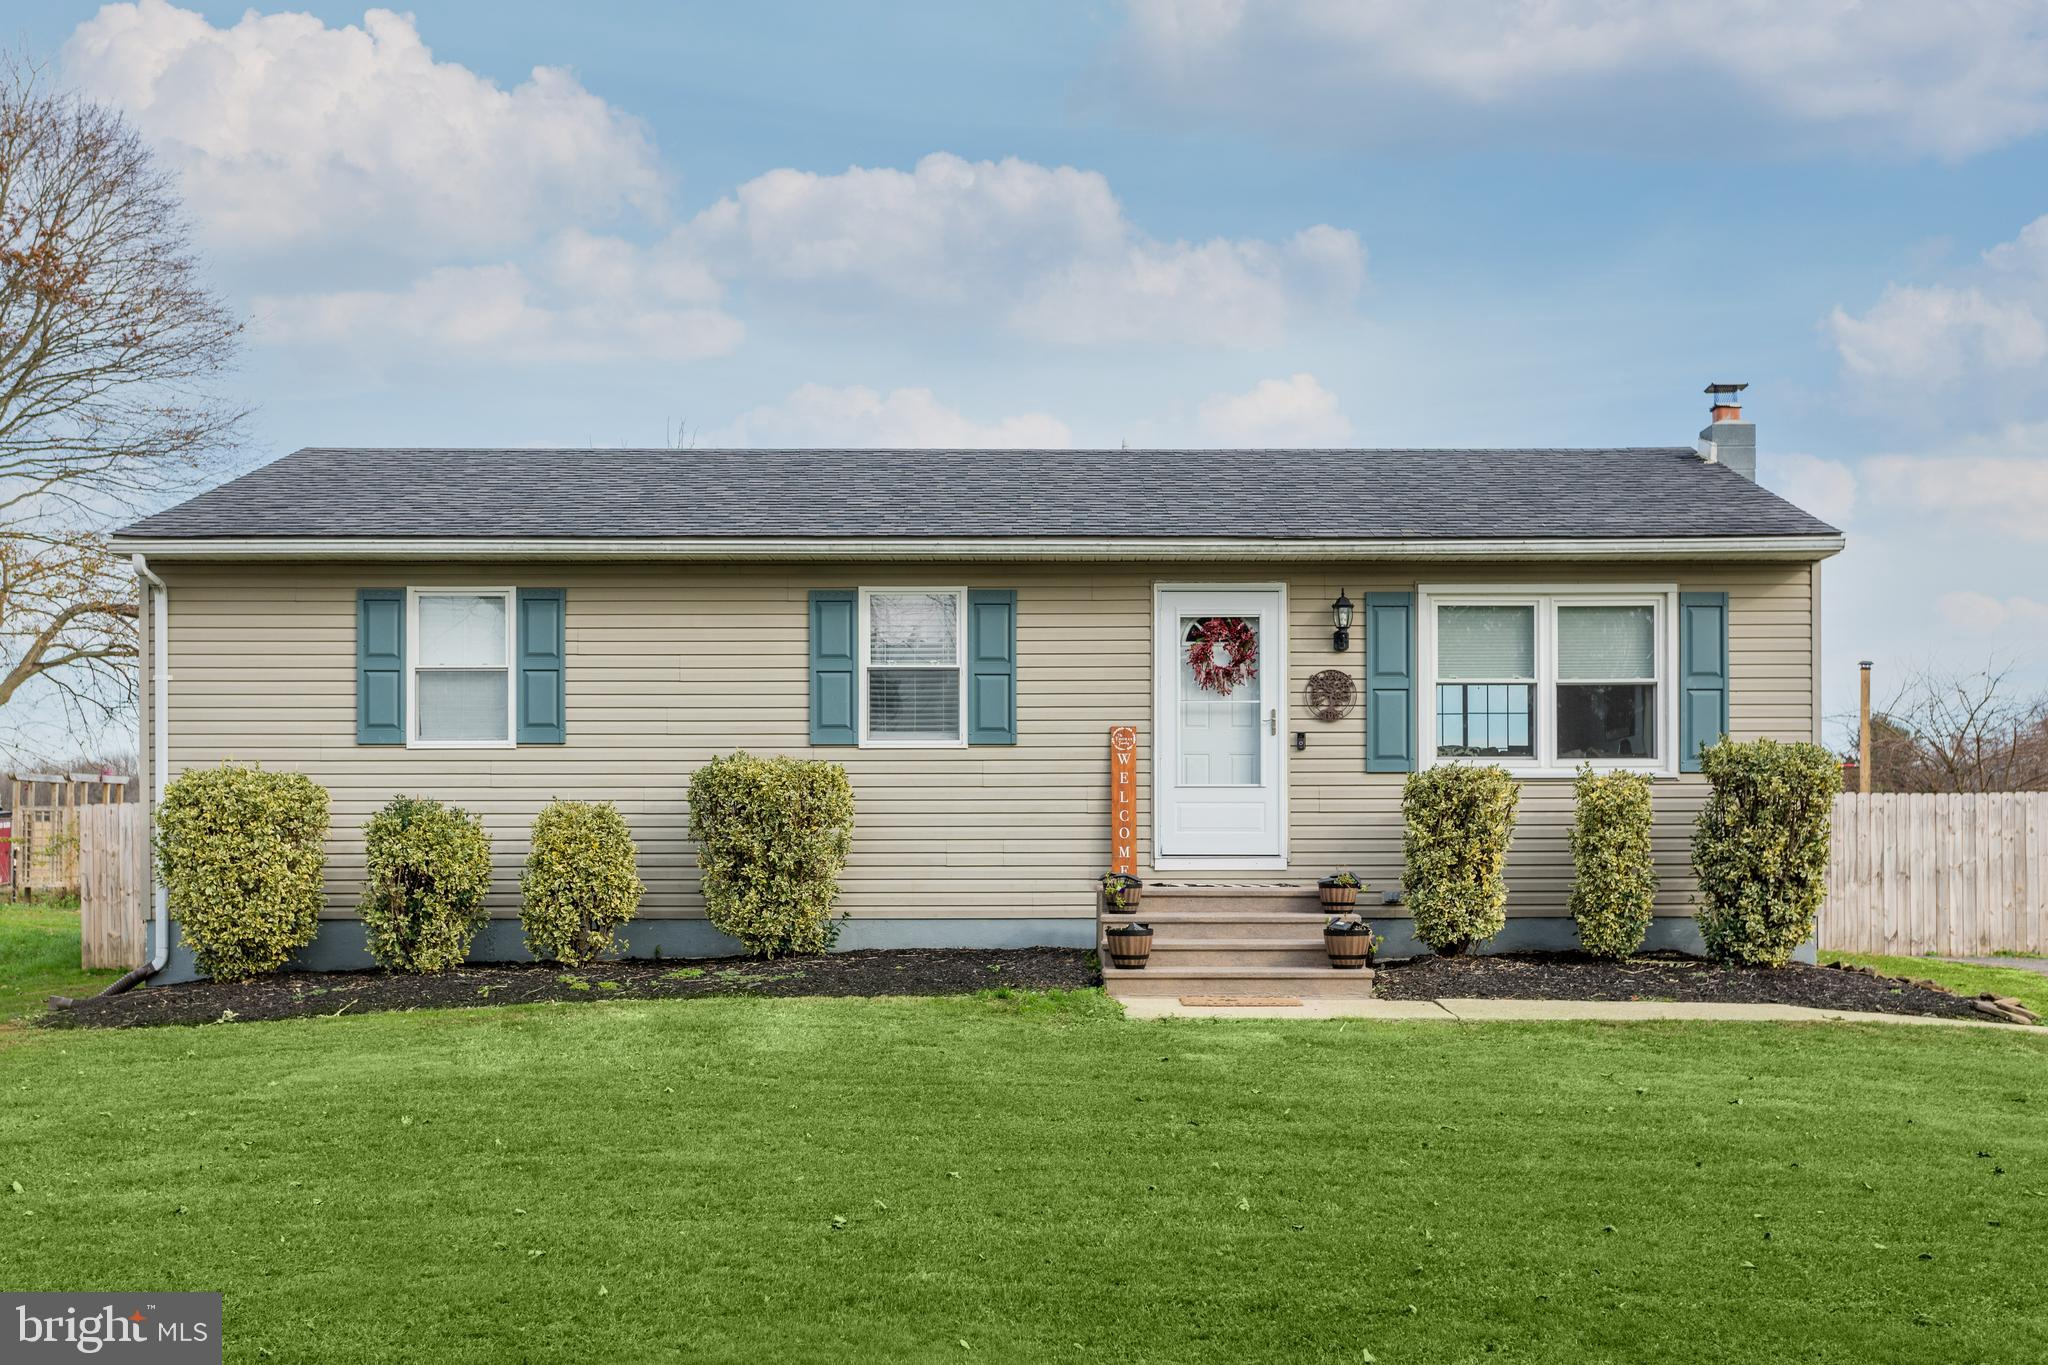 Welcome home to your little oasis! This charming rancher has been upgraded throughout for the right